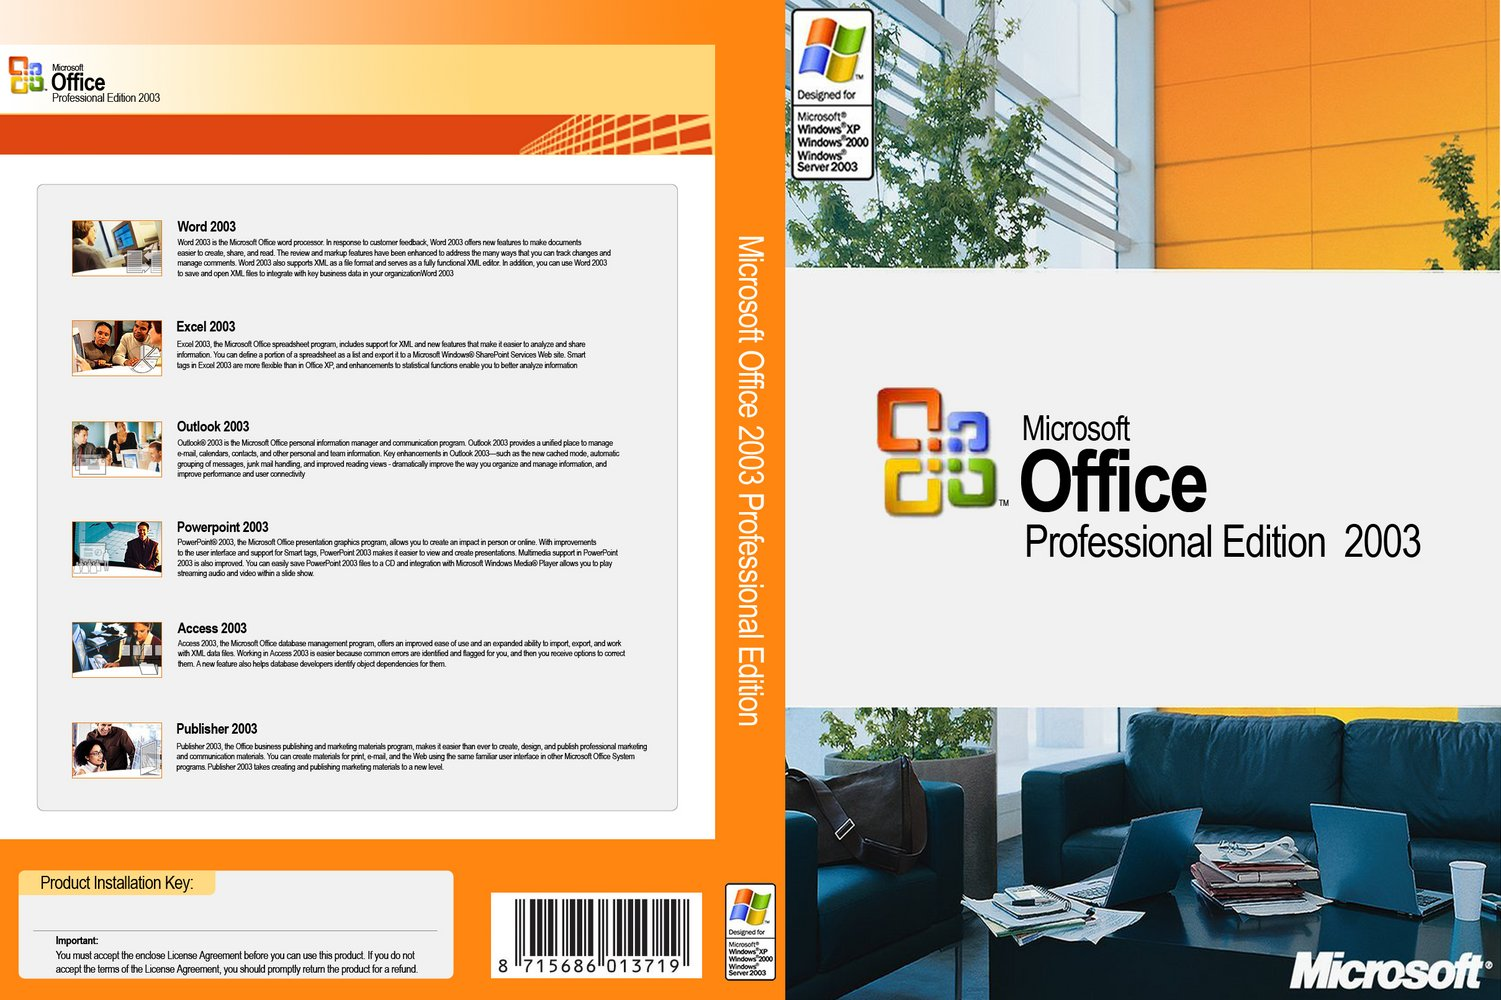 microsoft office professional edition 2003 descargar gratis